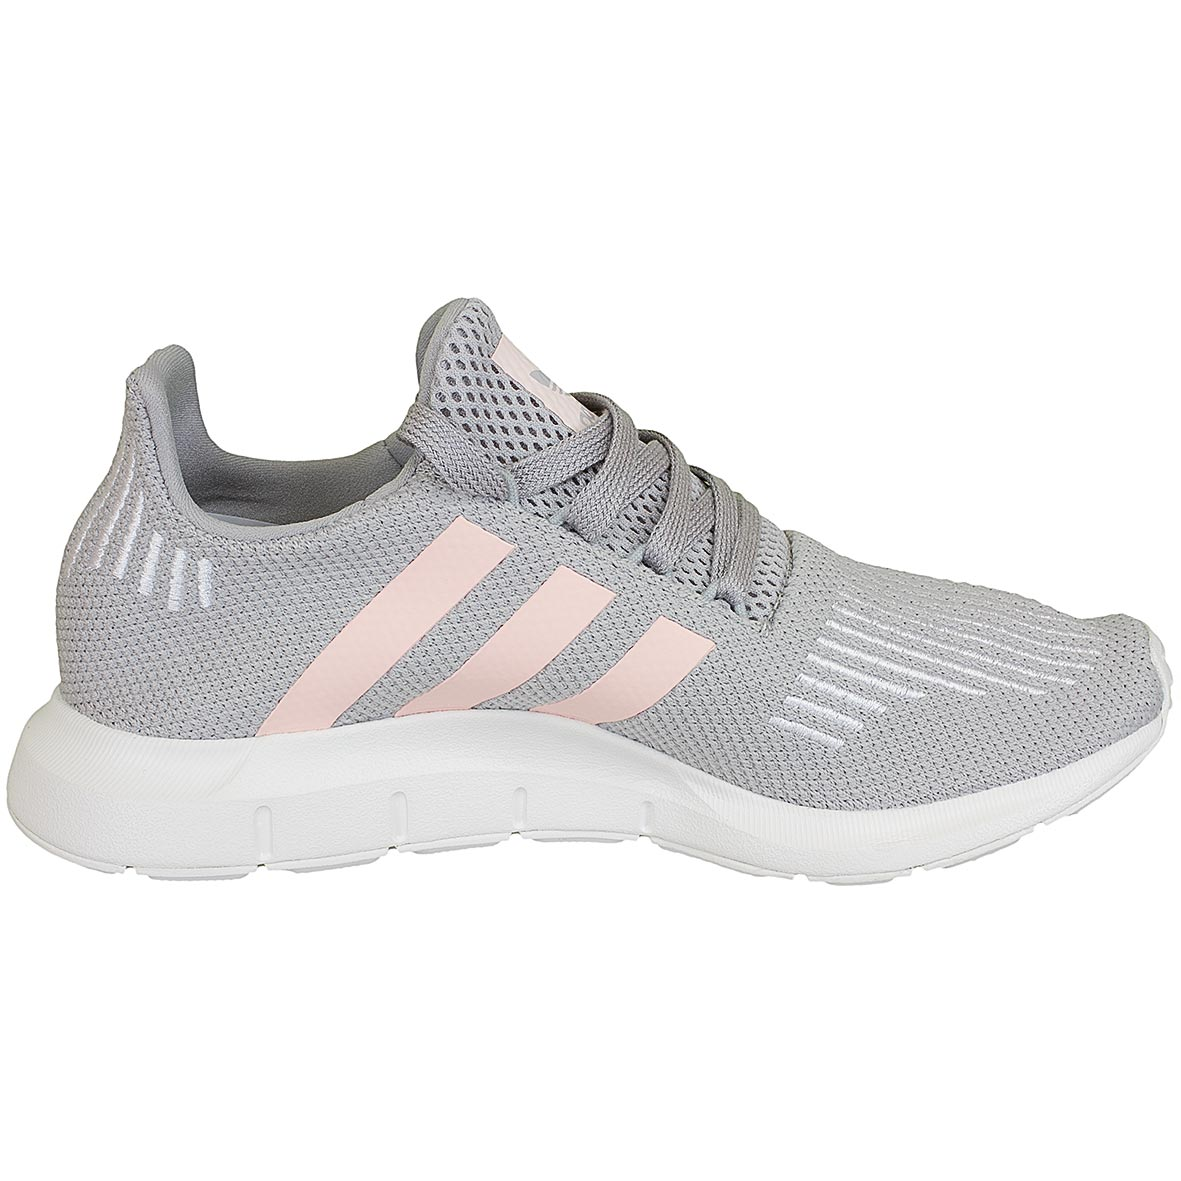 heiß adidas Originals Sneaker Swift Run rosa grau weiß